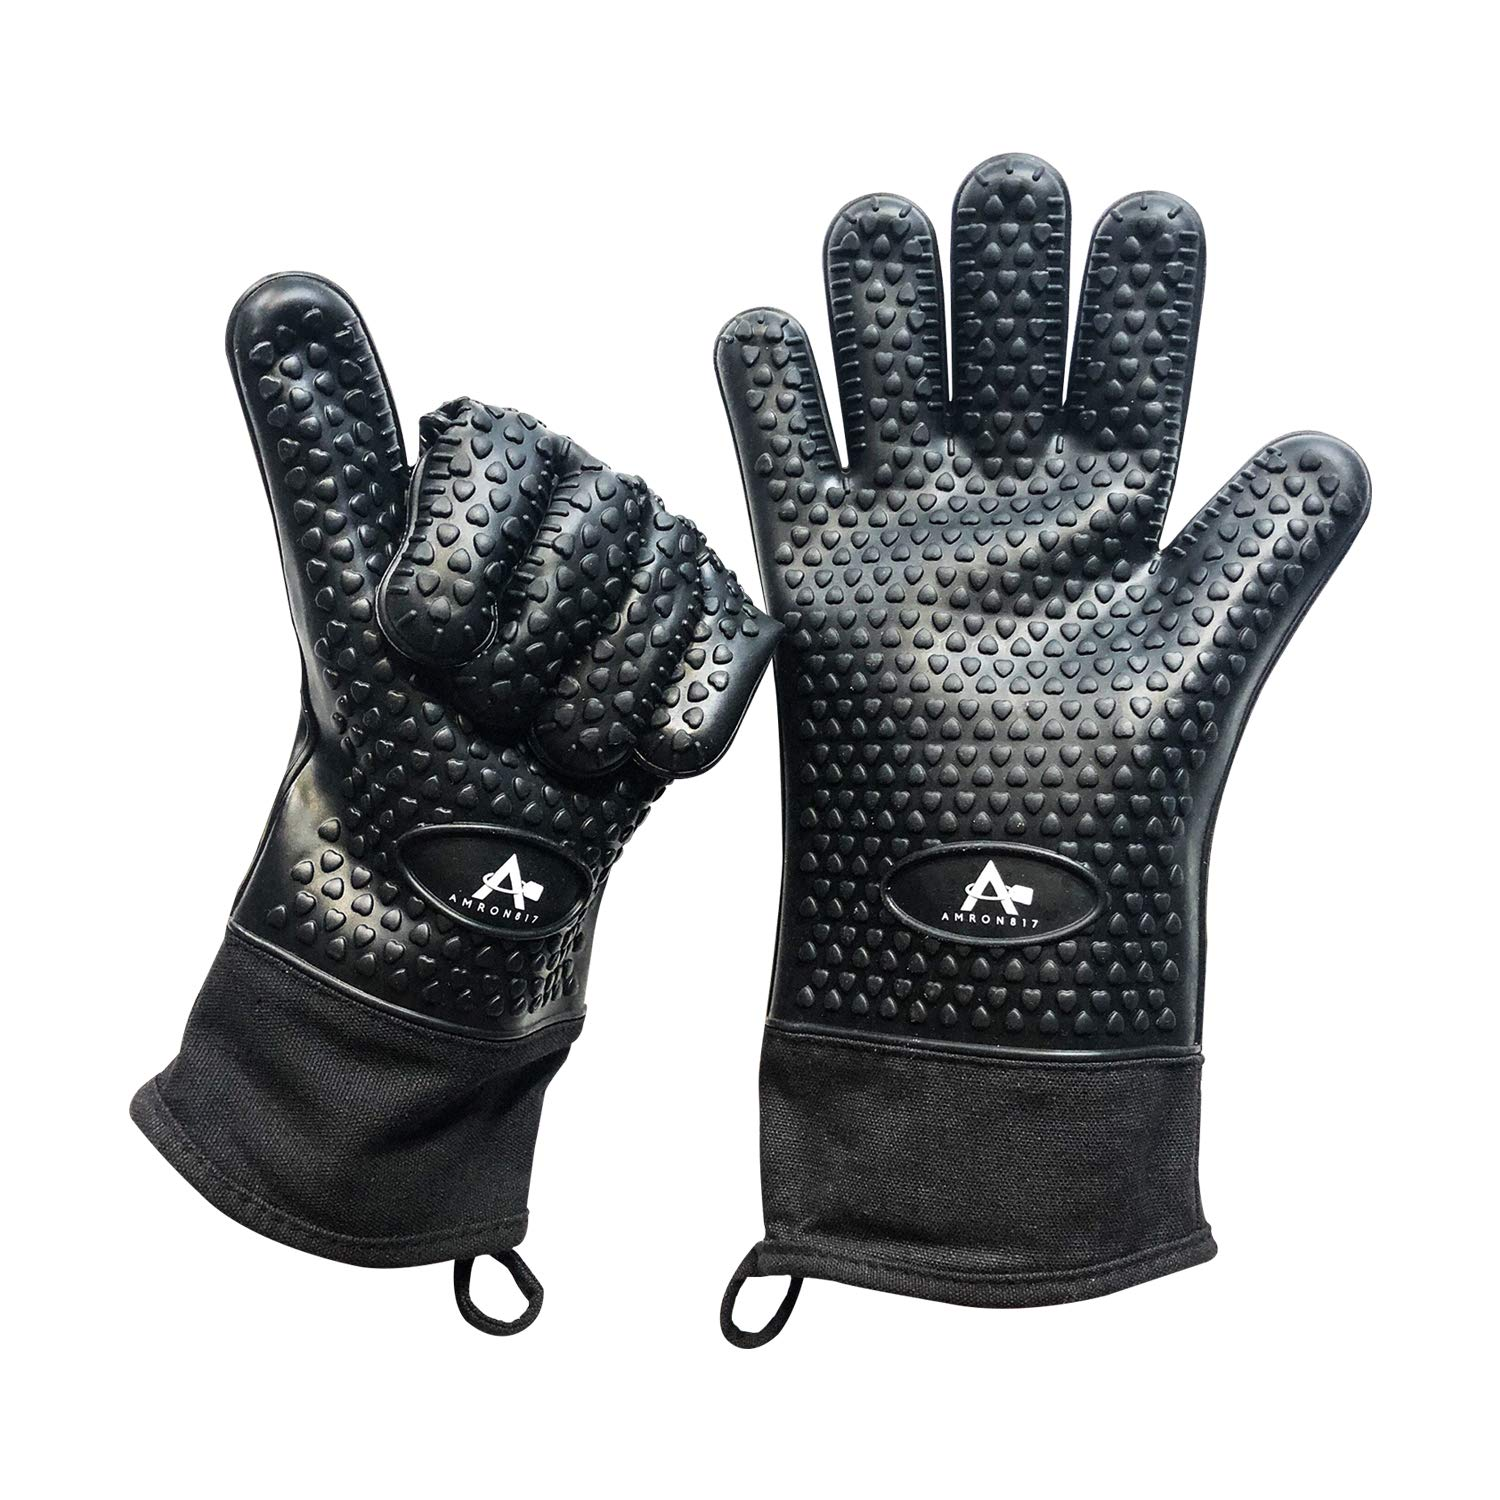 Premium Black Heat Resistant - Machine and Hand Washable - Silicone Oven Mitts - Black and Grey Color Options - ONLY on Amazon